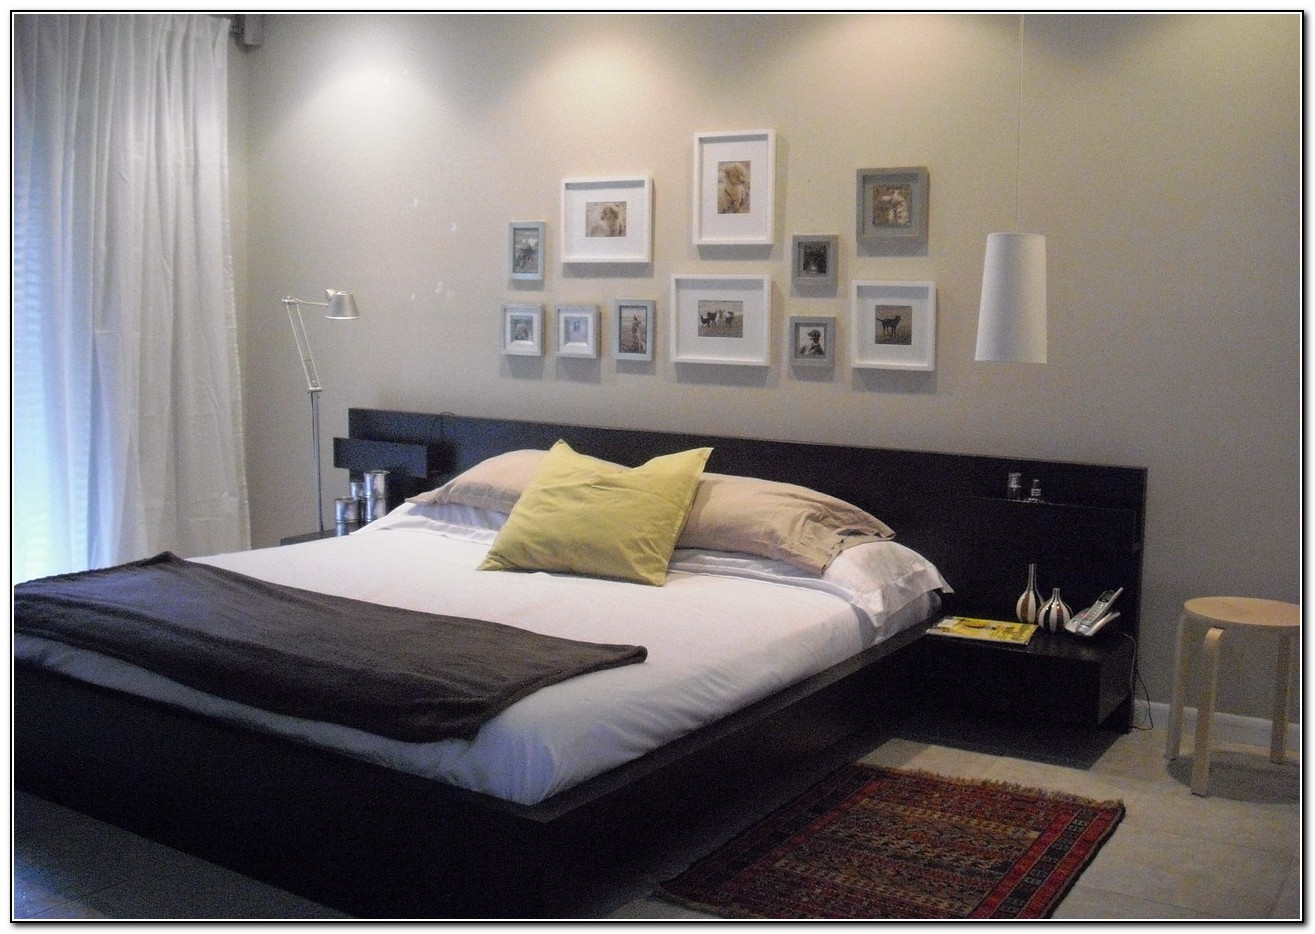 Ikea Malm Bed With Side Tables - Beds : Home Design Ideas ...